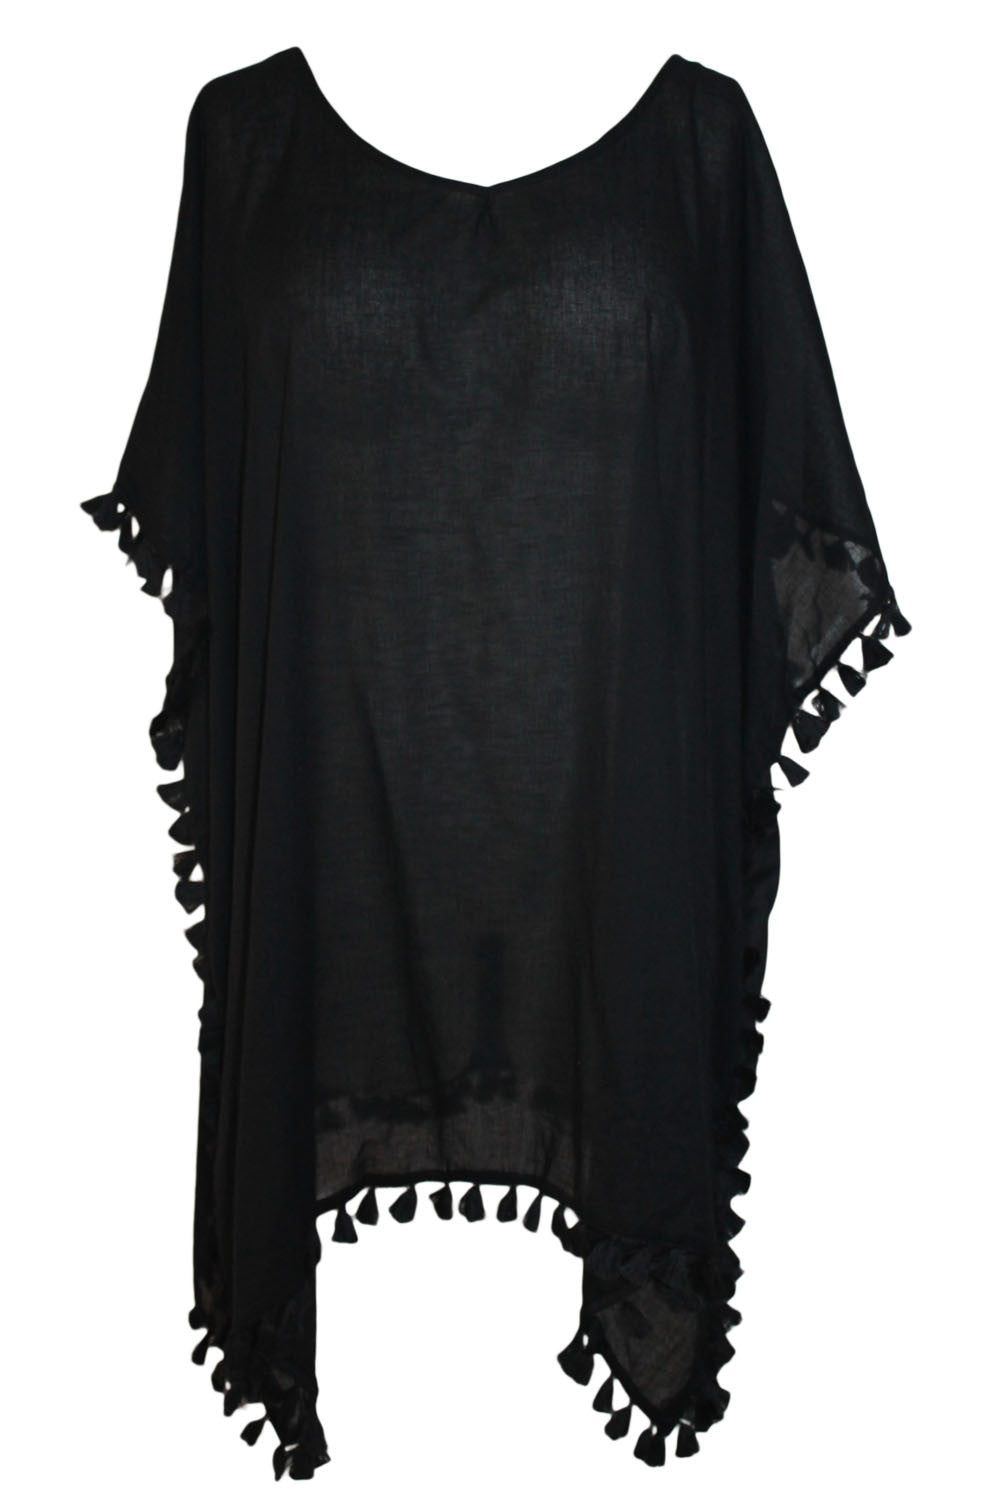 Her Chic Black Pom Pom Tassel Hem Gauze Beach Cover up